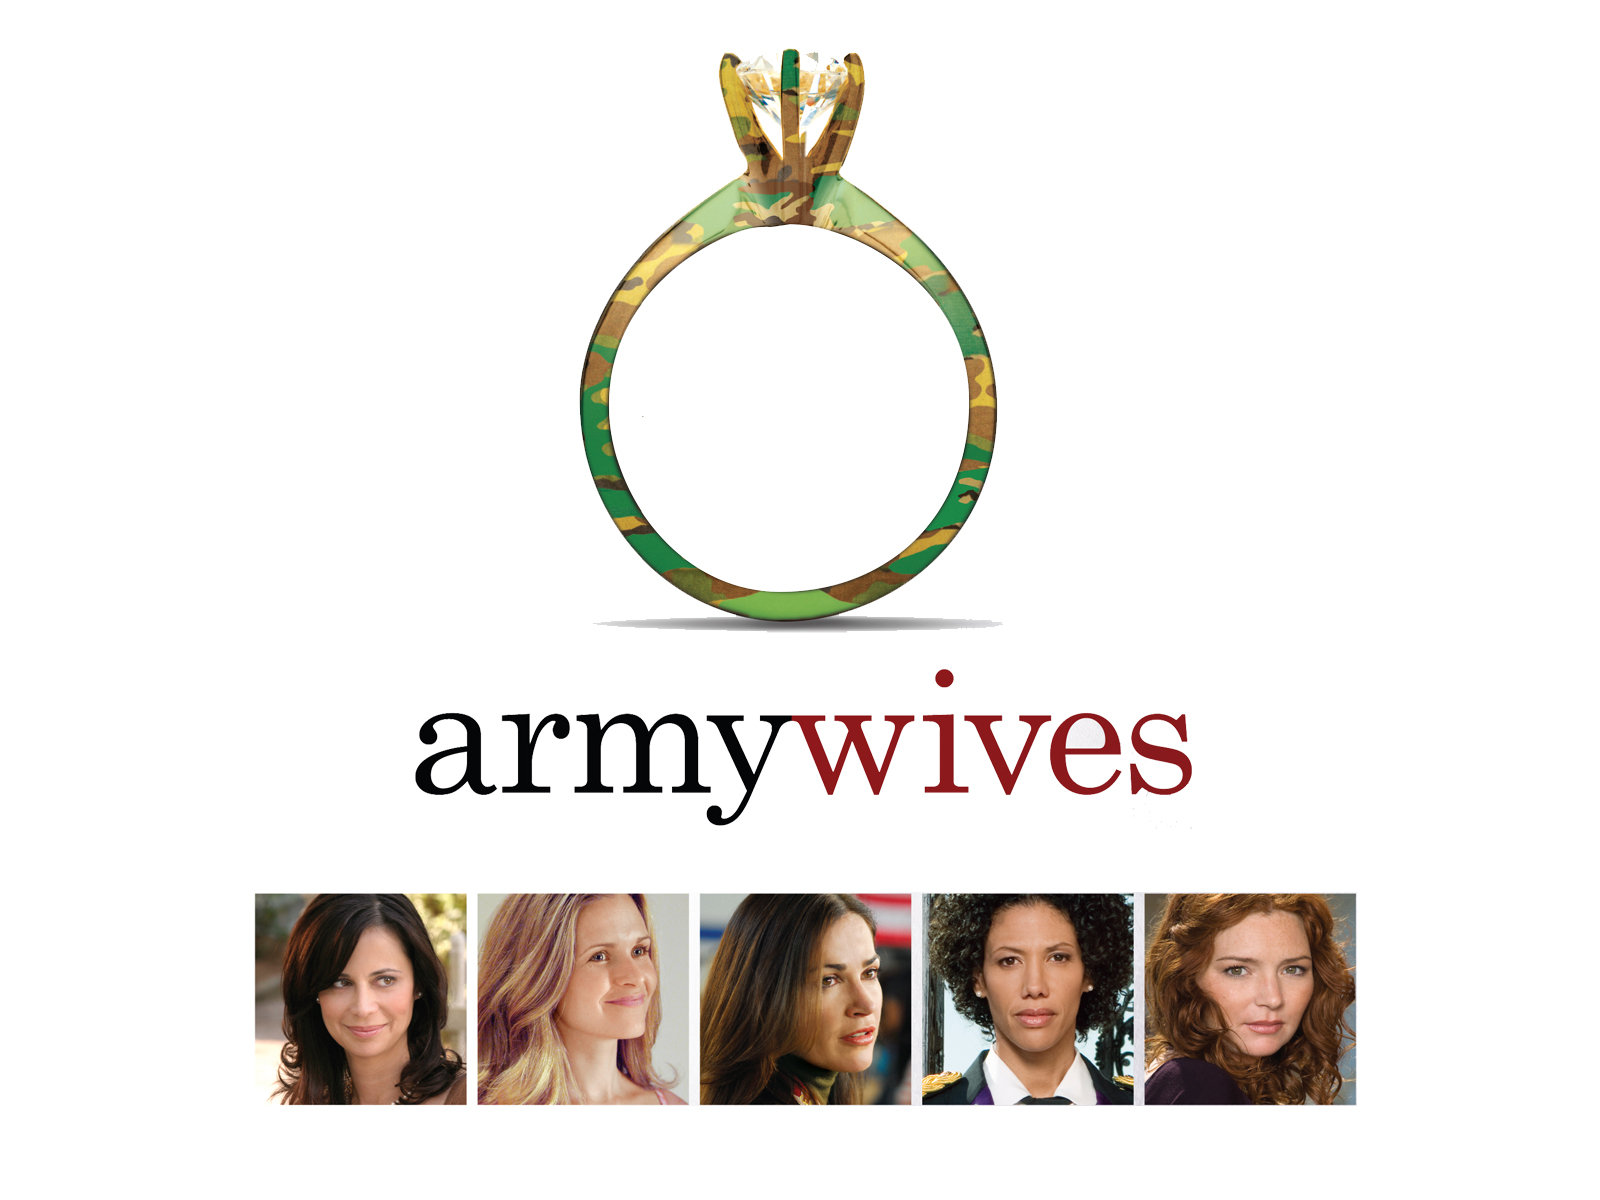 Watch army wives season 5 episode 11 online tv fanatic.